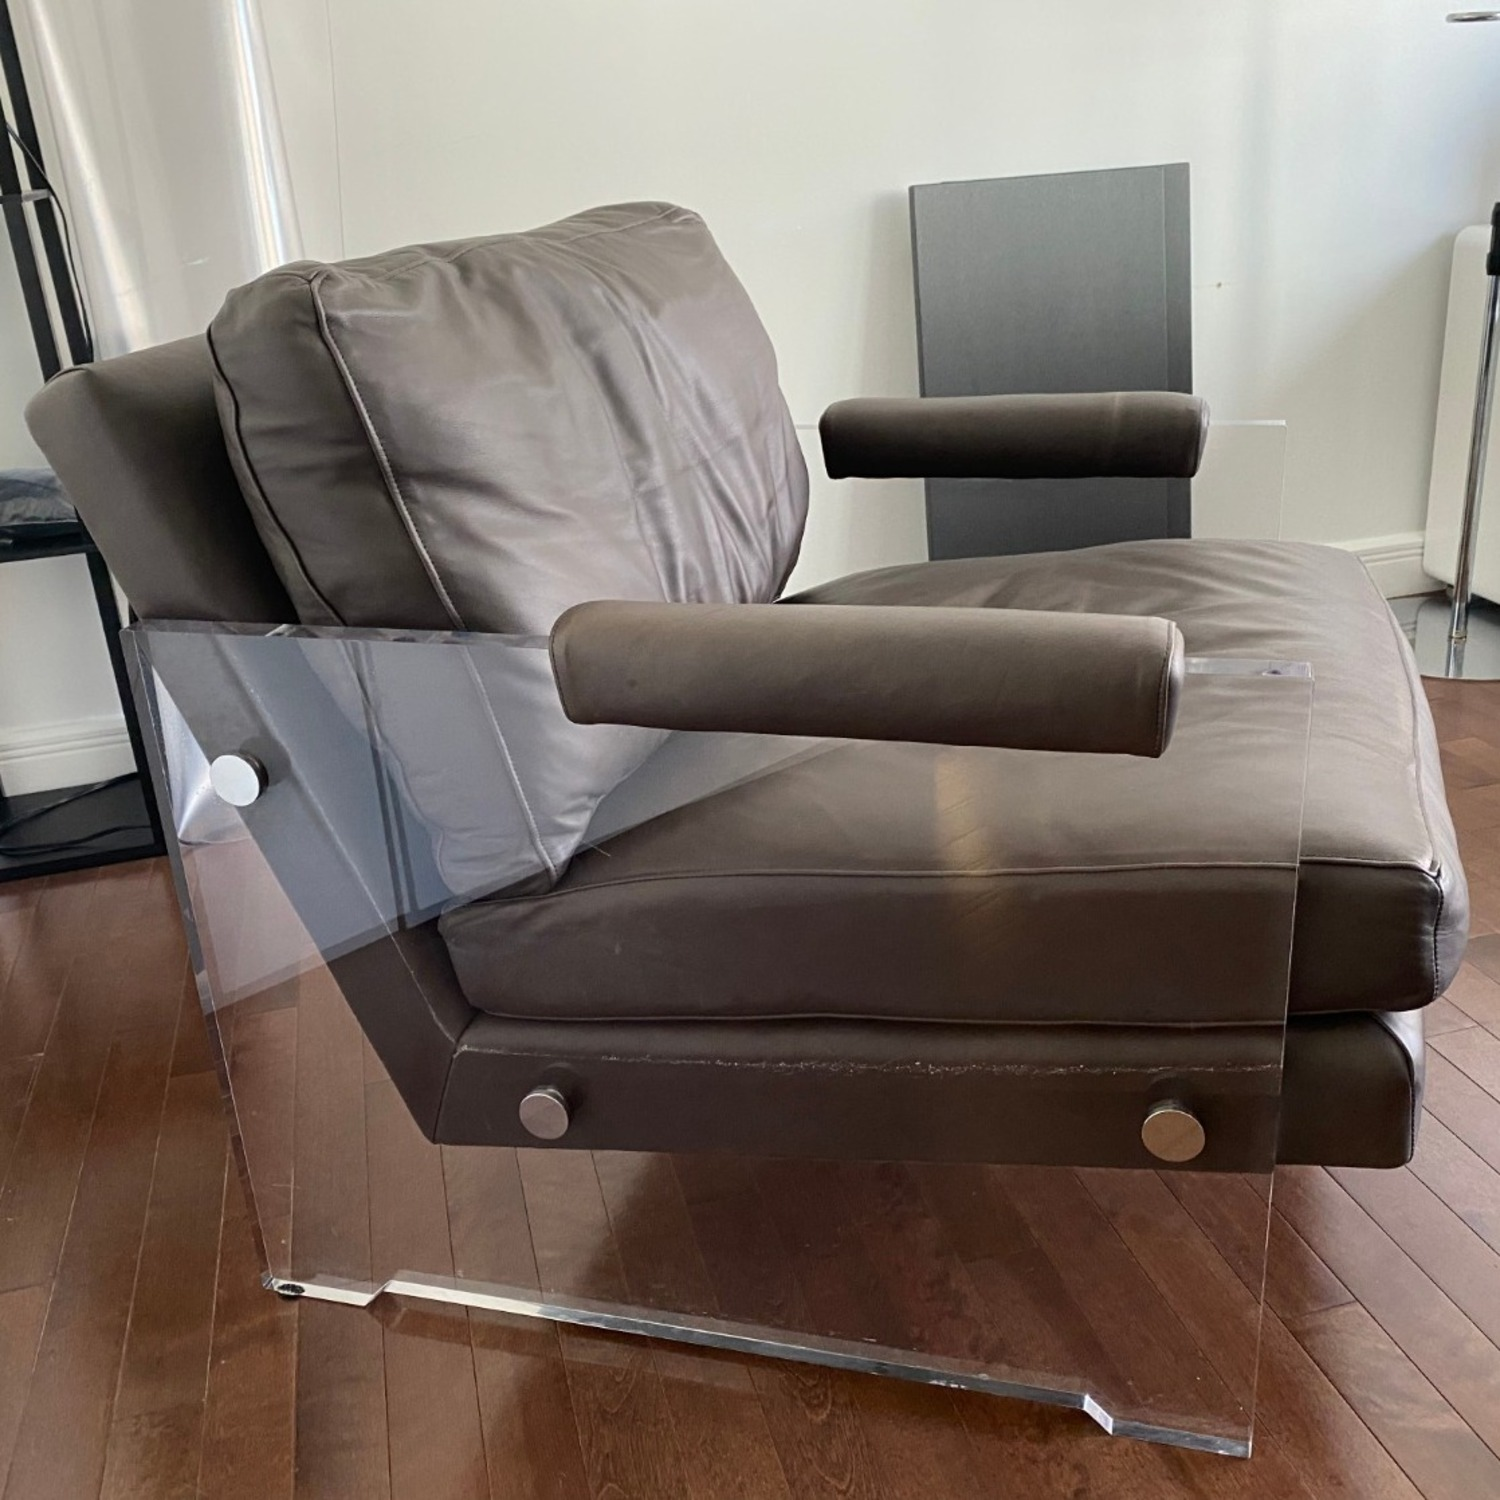 Restoration Hardware Leather Luca Chair - image-23